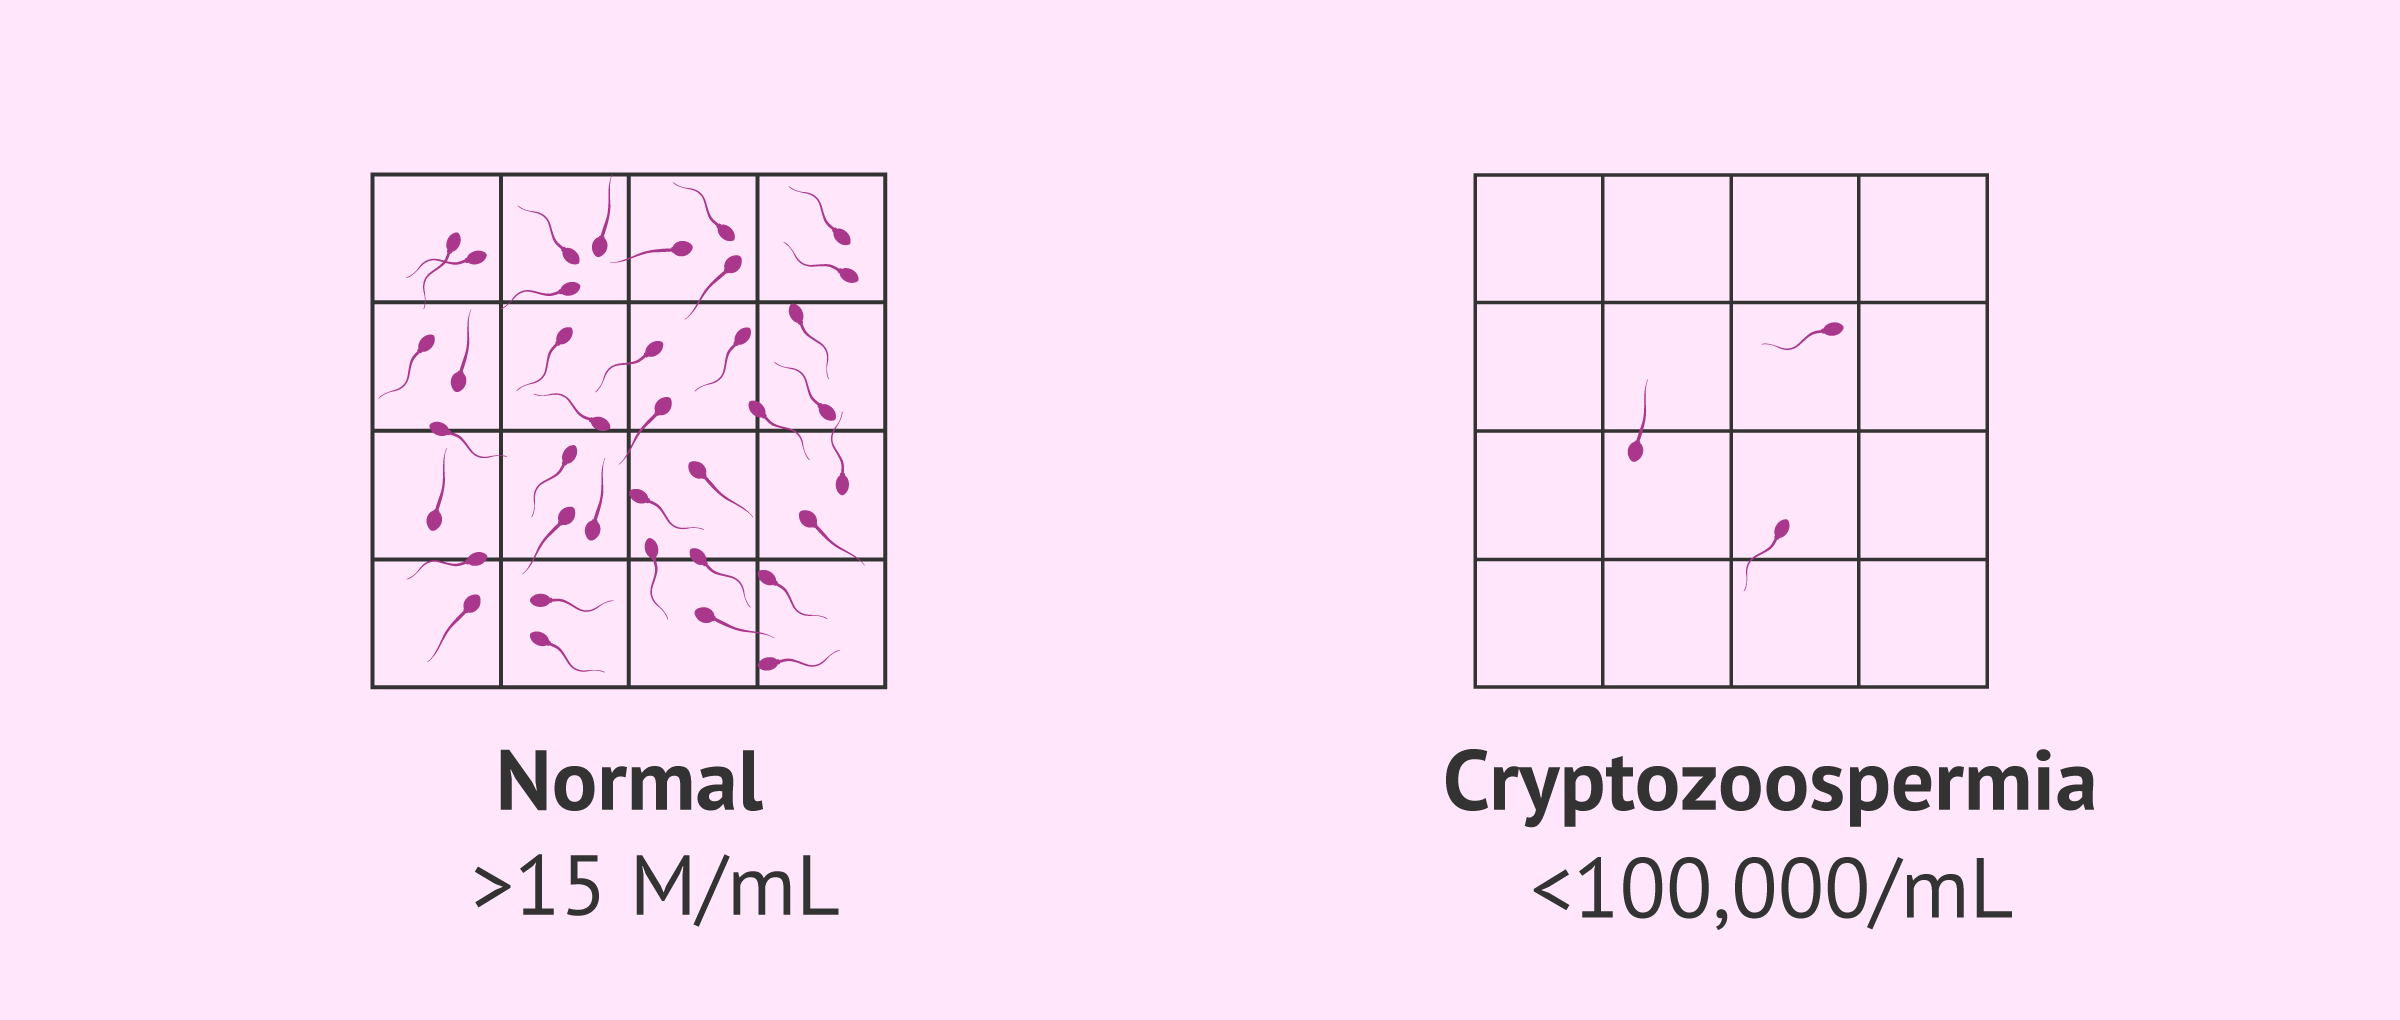 Normal sample and sample with cryptozoospermia